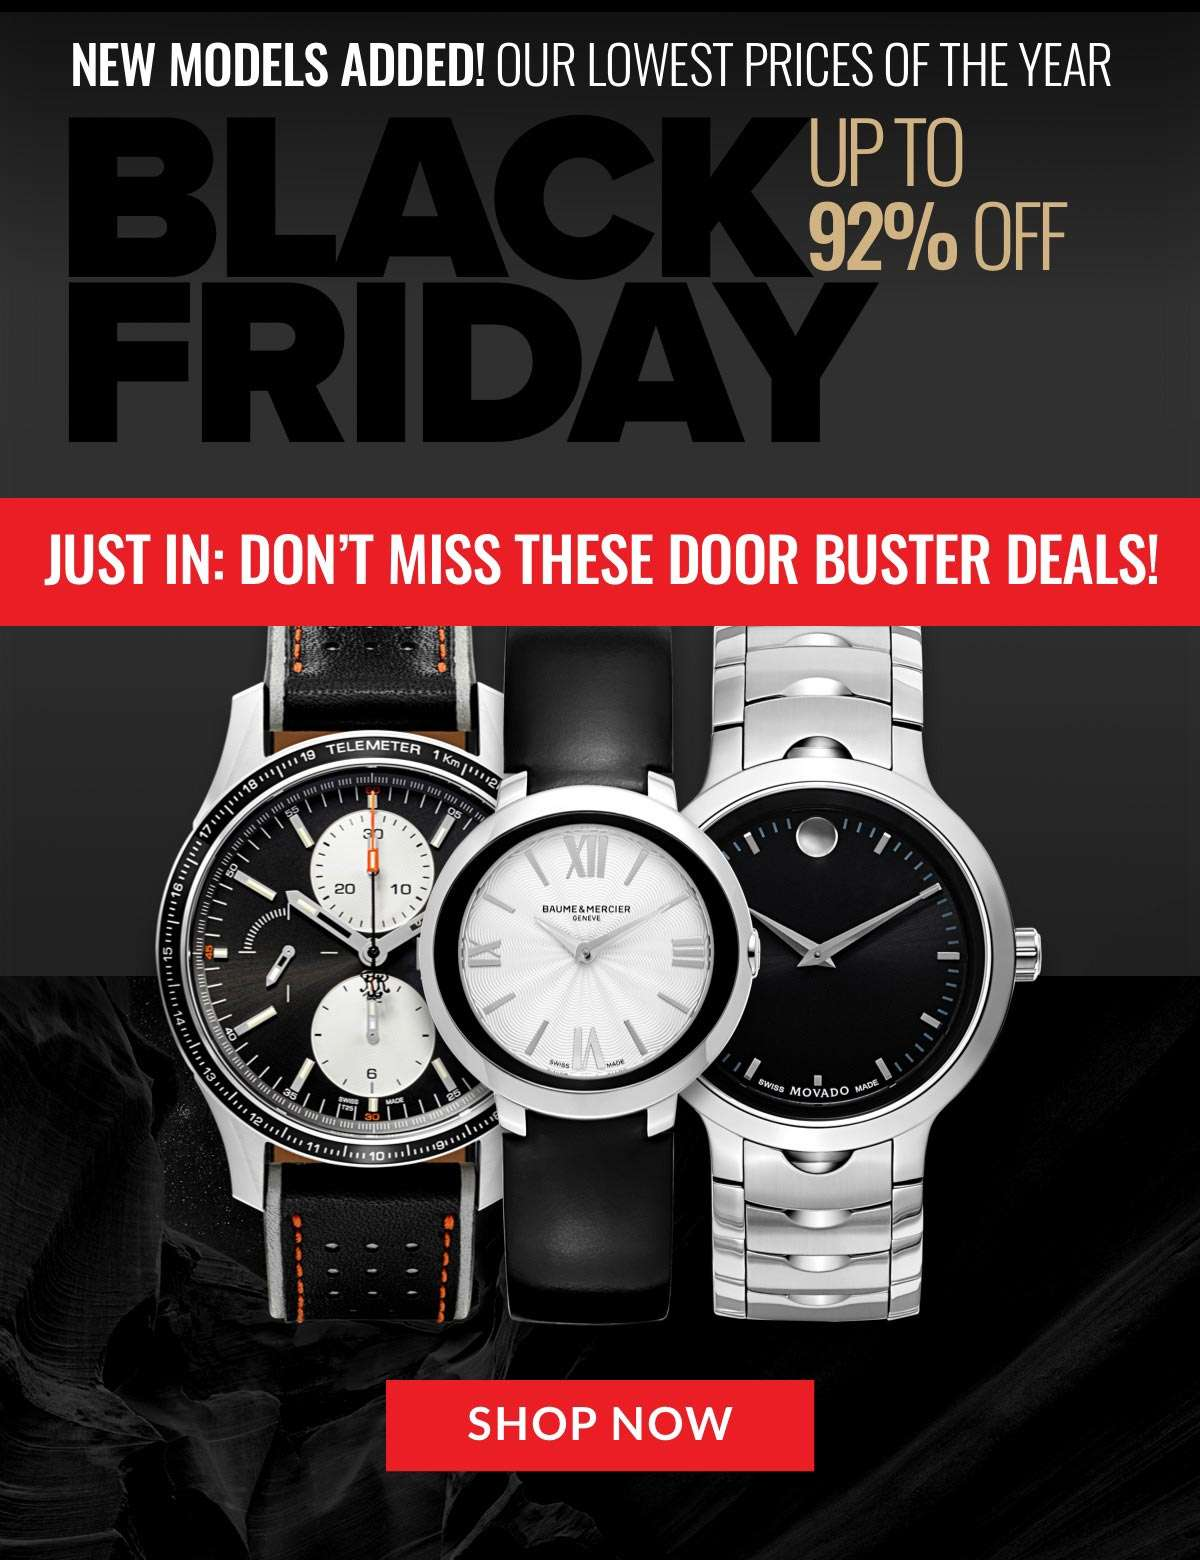 Just In: Don't Miss These DOORBUSTER DEALS!